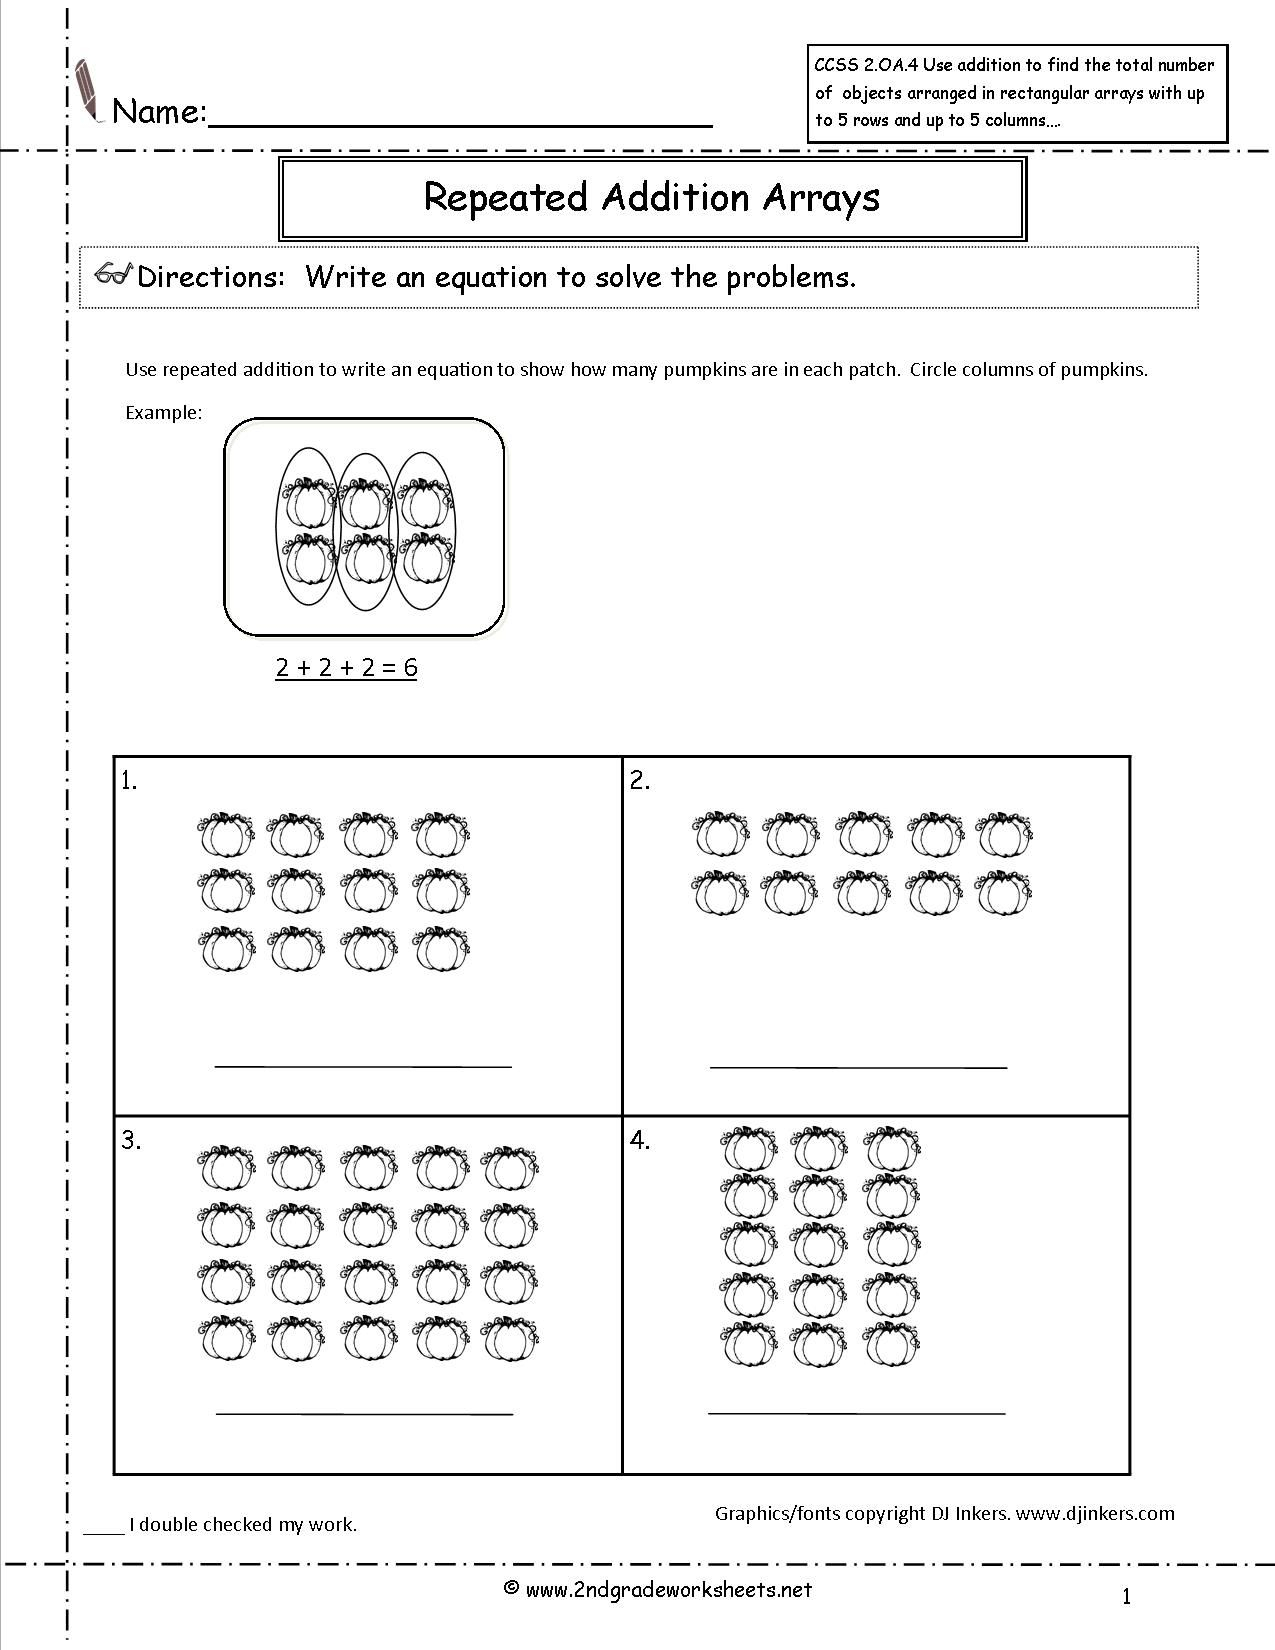 Pumpkins Repeated Addition Worksheet | Repeated Addition